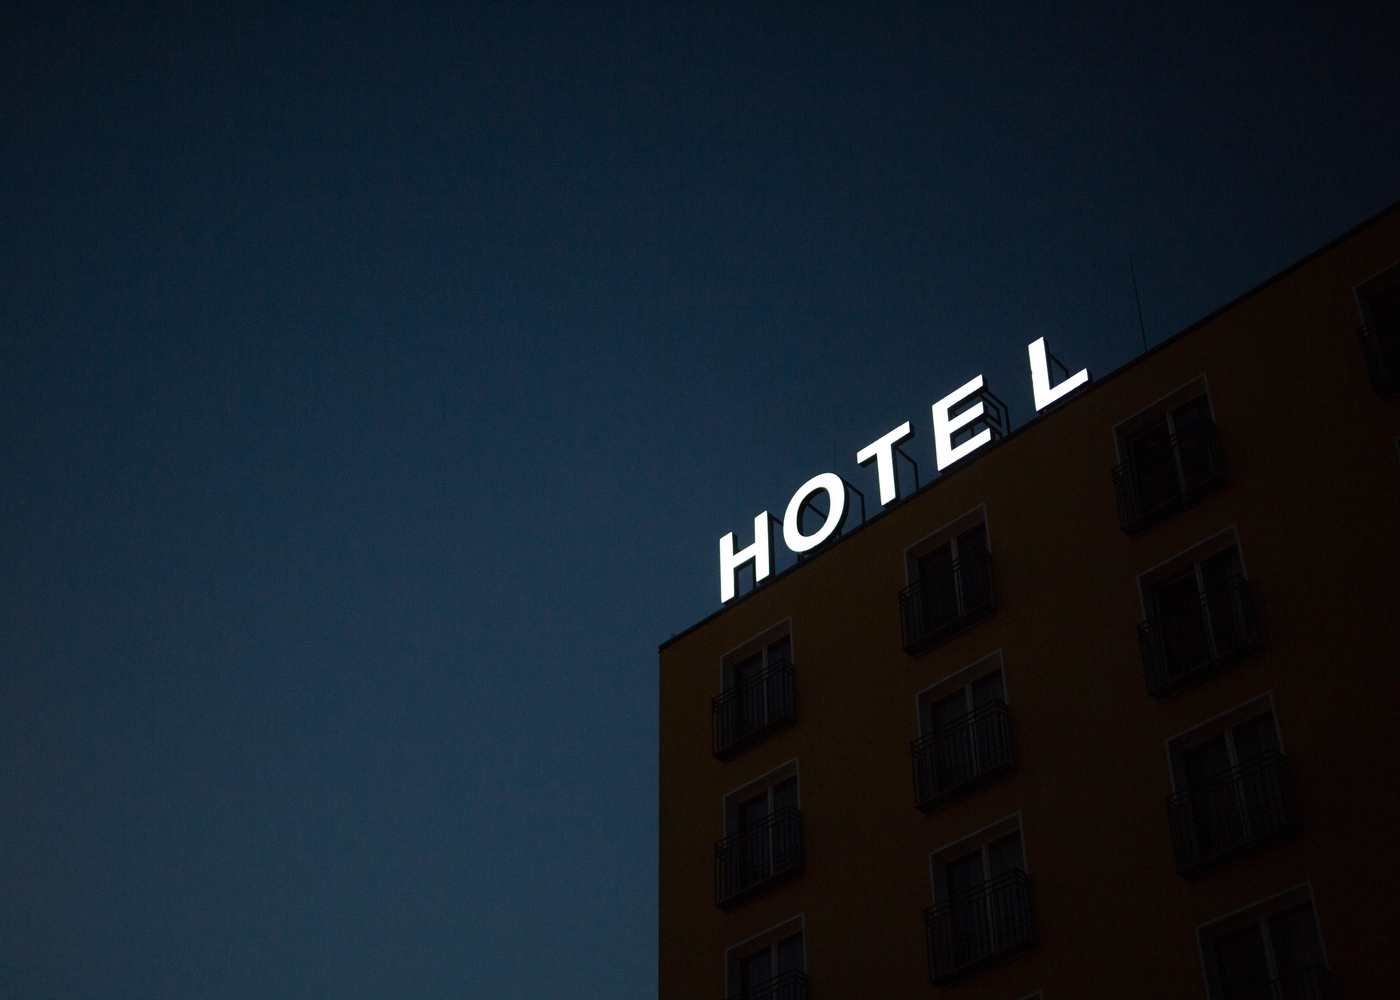 New OTA Insight study sheds light on hotels' Length-of-Stay strategies